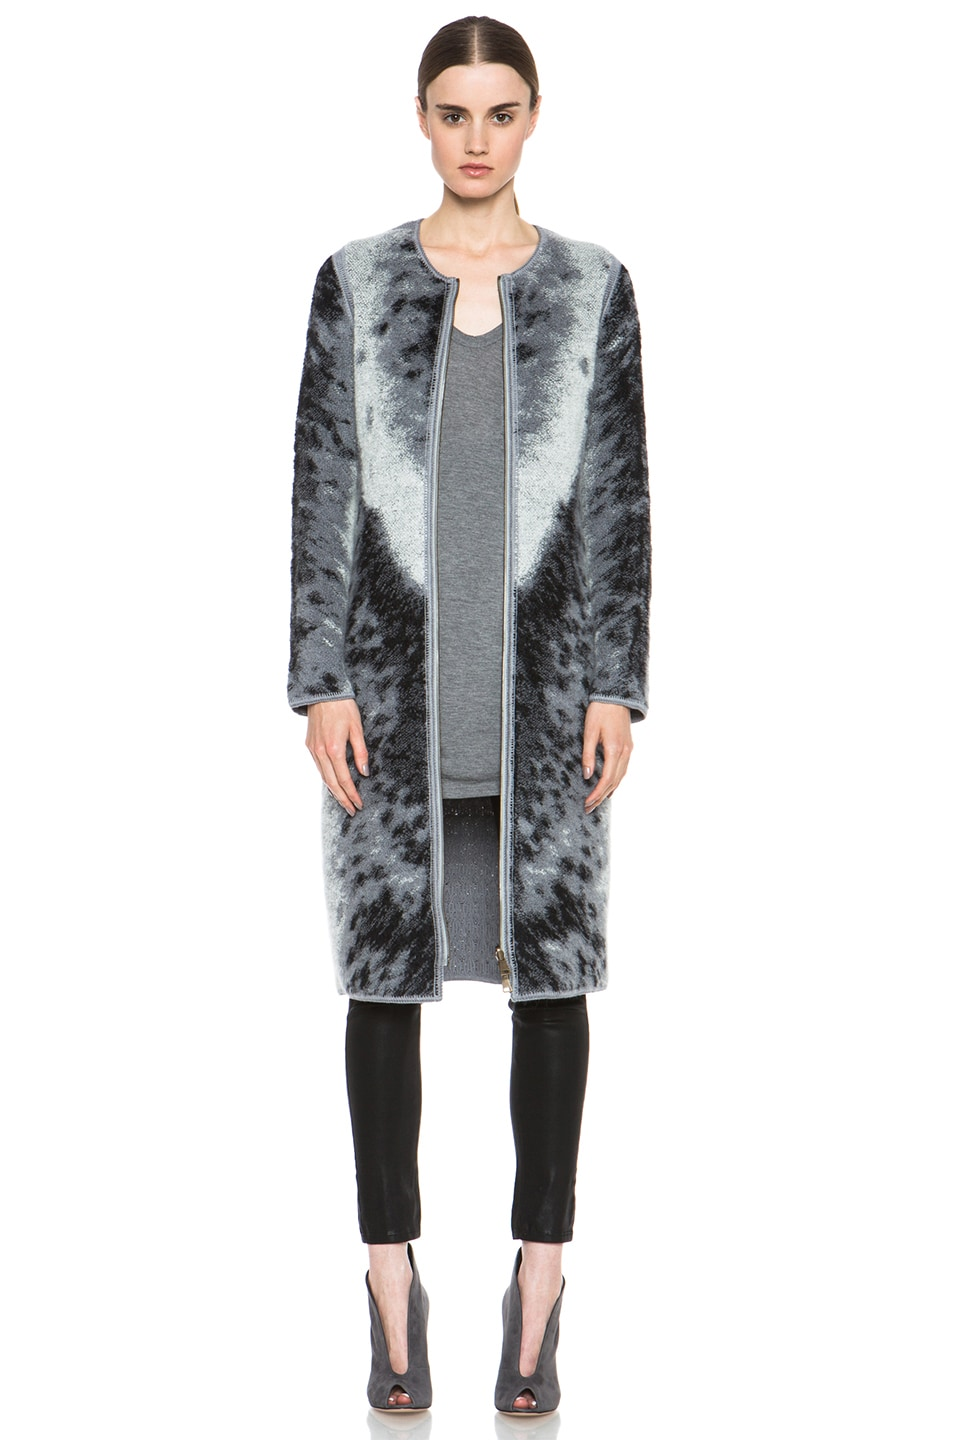 Image 1 of Missoni Mohair-Blend Cardigan Jacket in Grey Leopard & Zebra Print